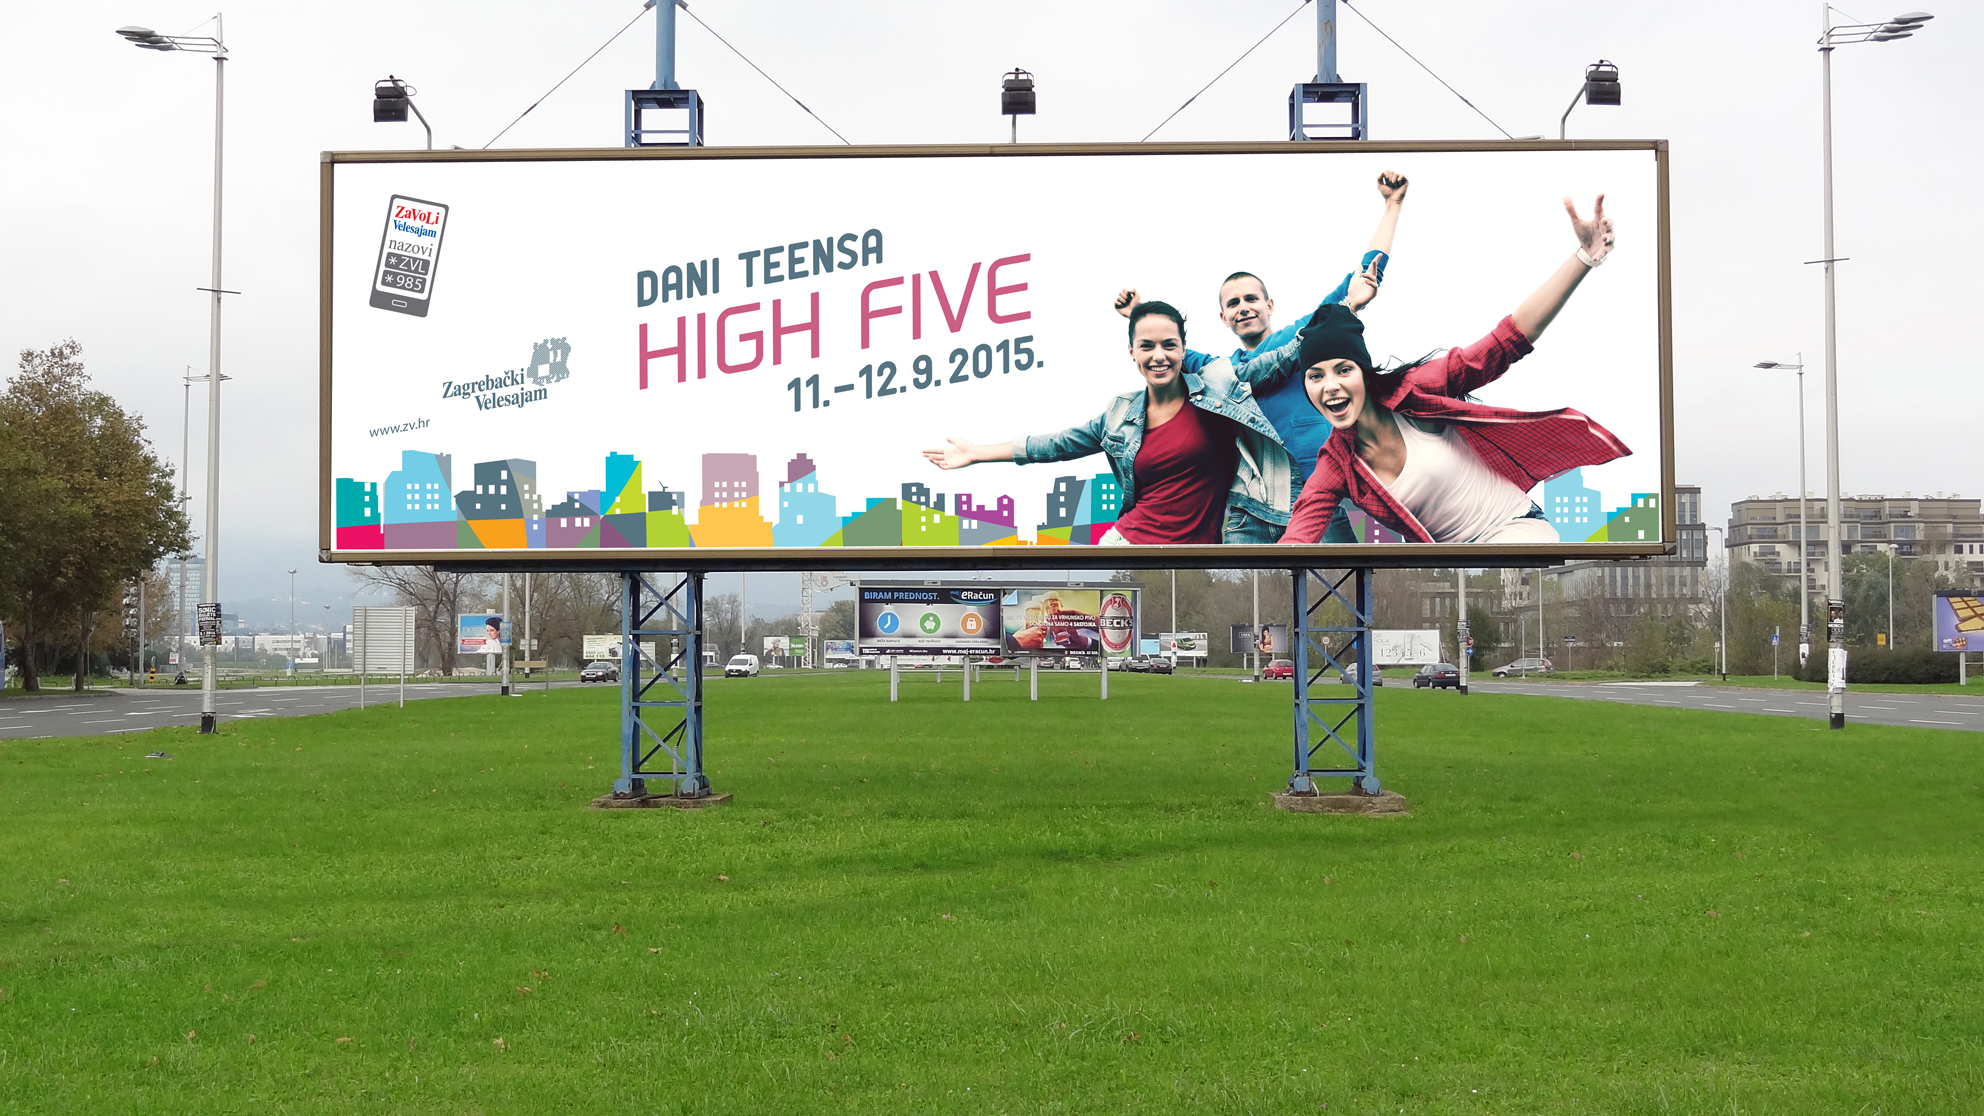 High five teen days, billboard